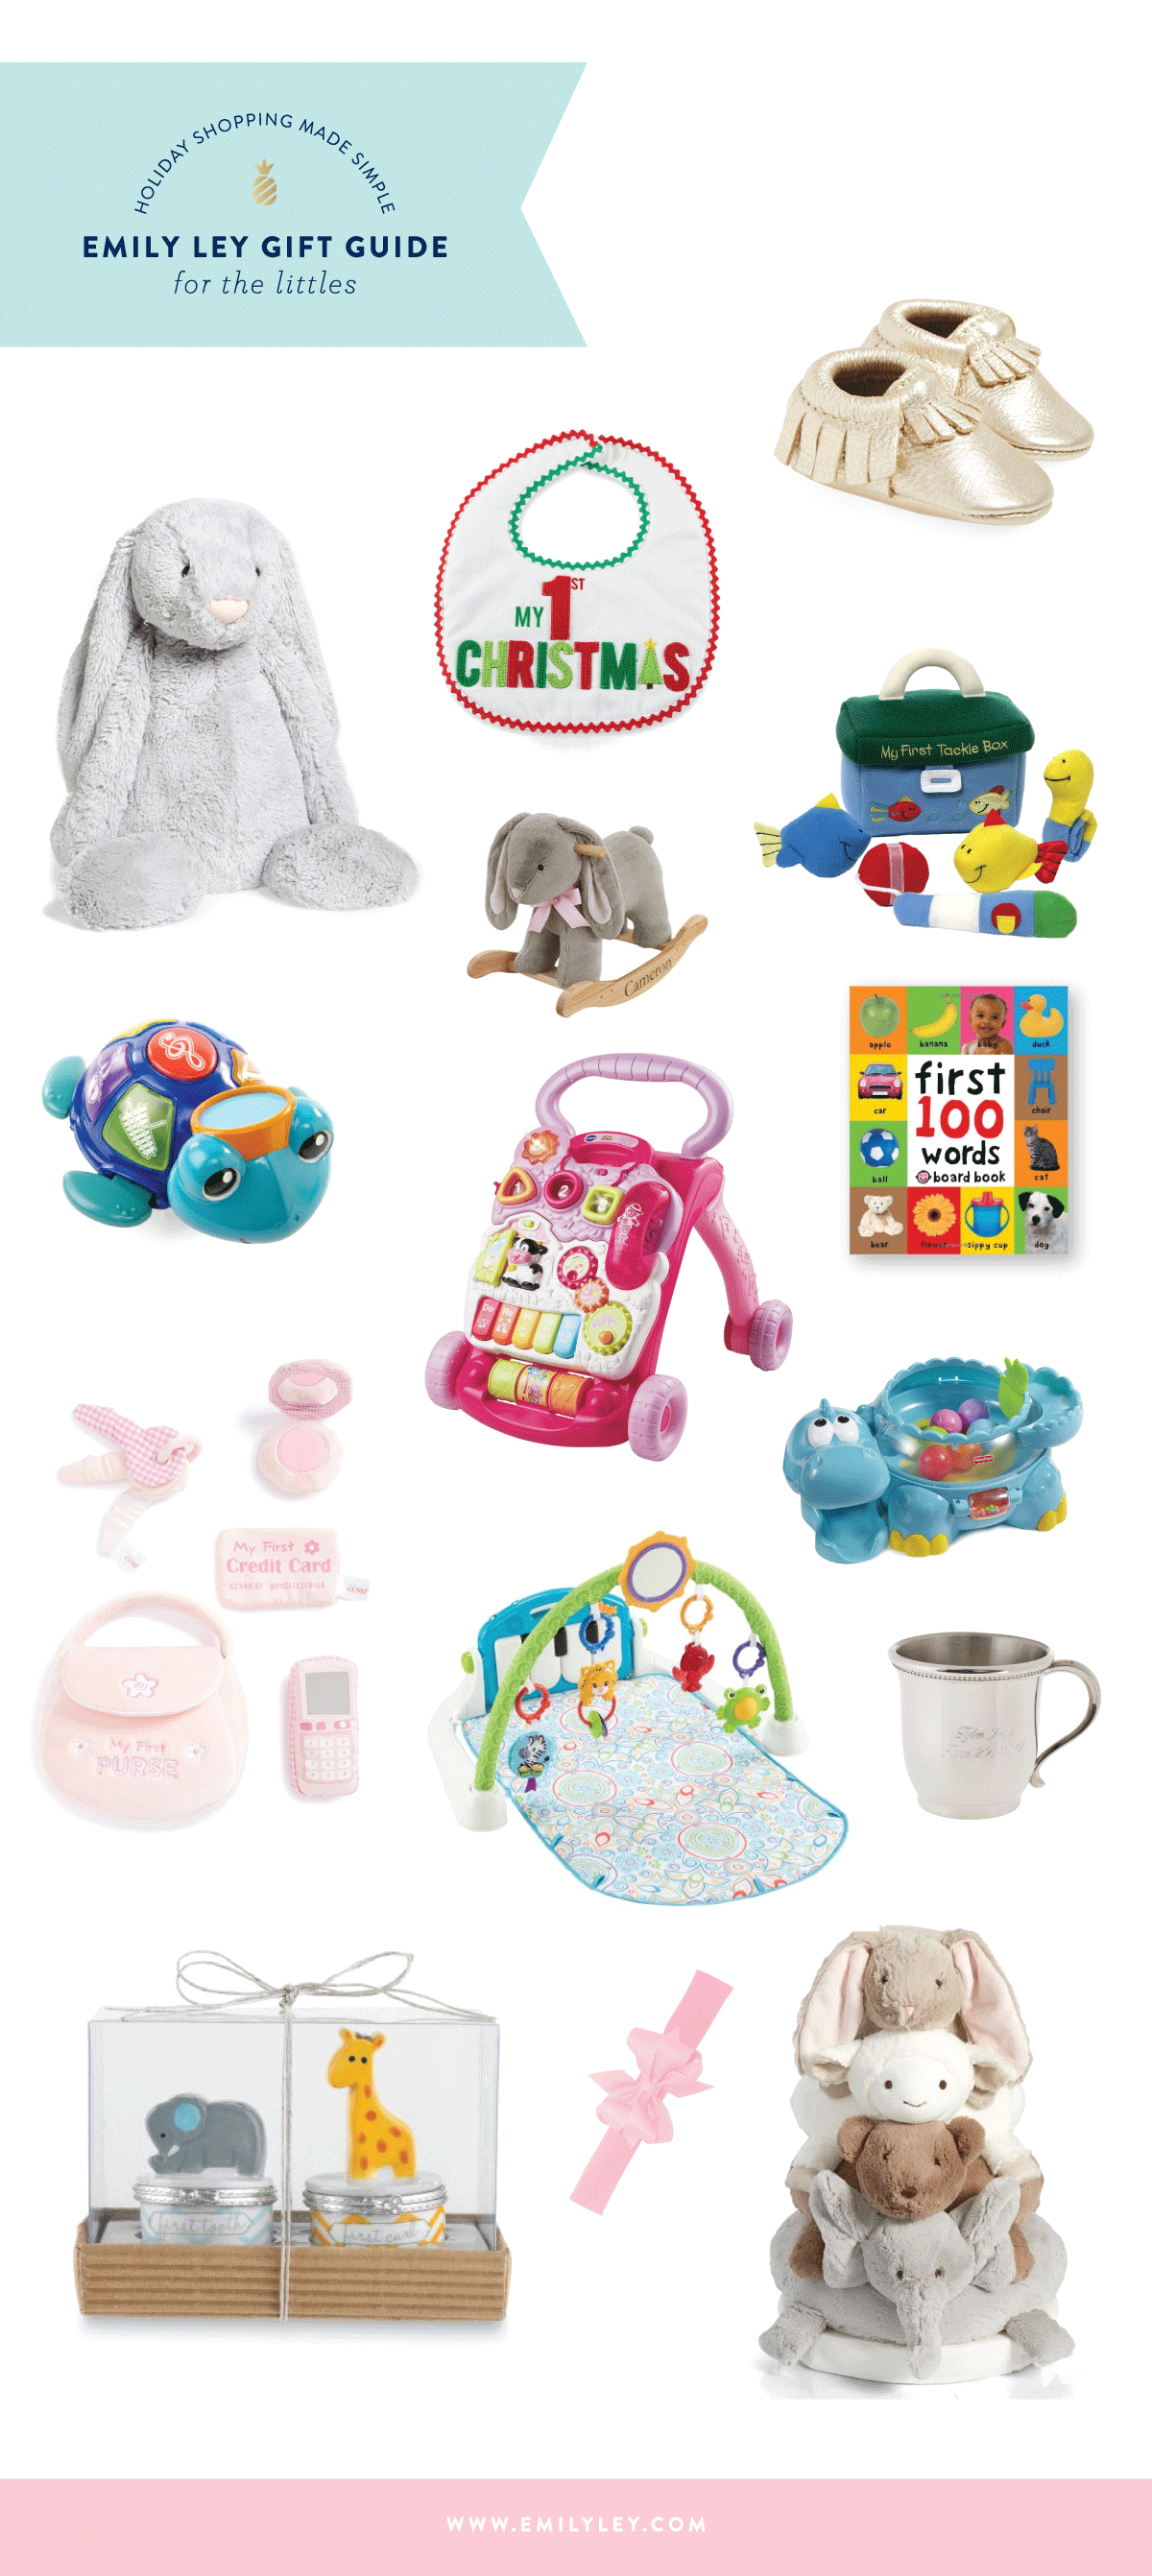 Emily-Ley-Gift-Guide-Babies.png